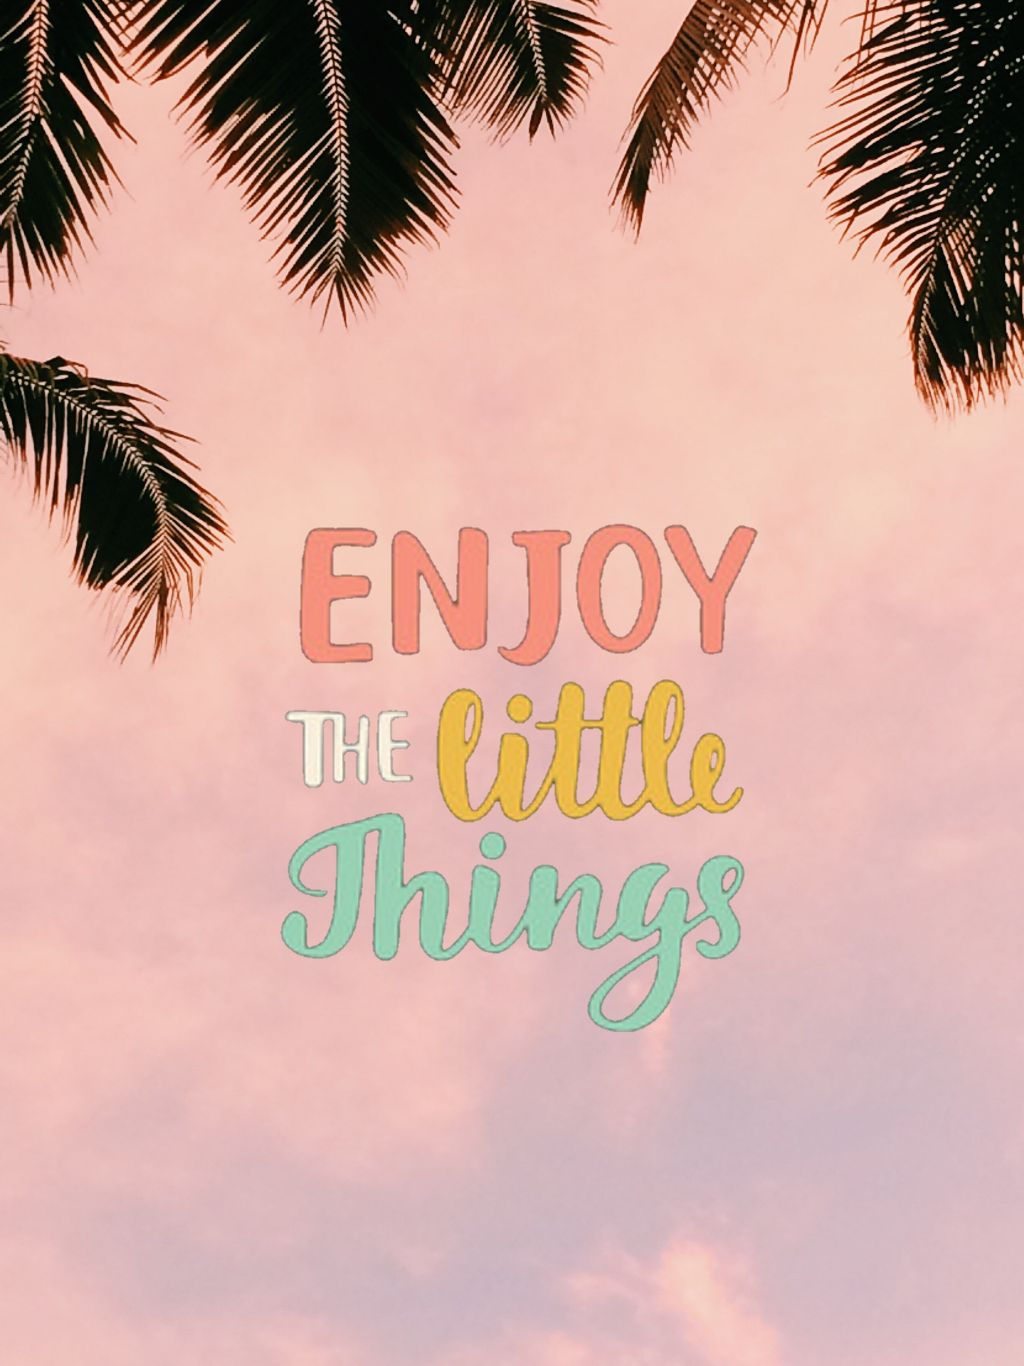 Enjoy the little things #freetoedit #madewithpicsart #quotes